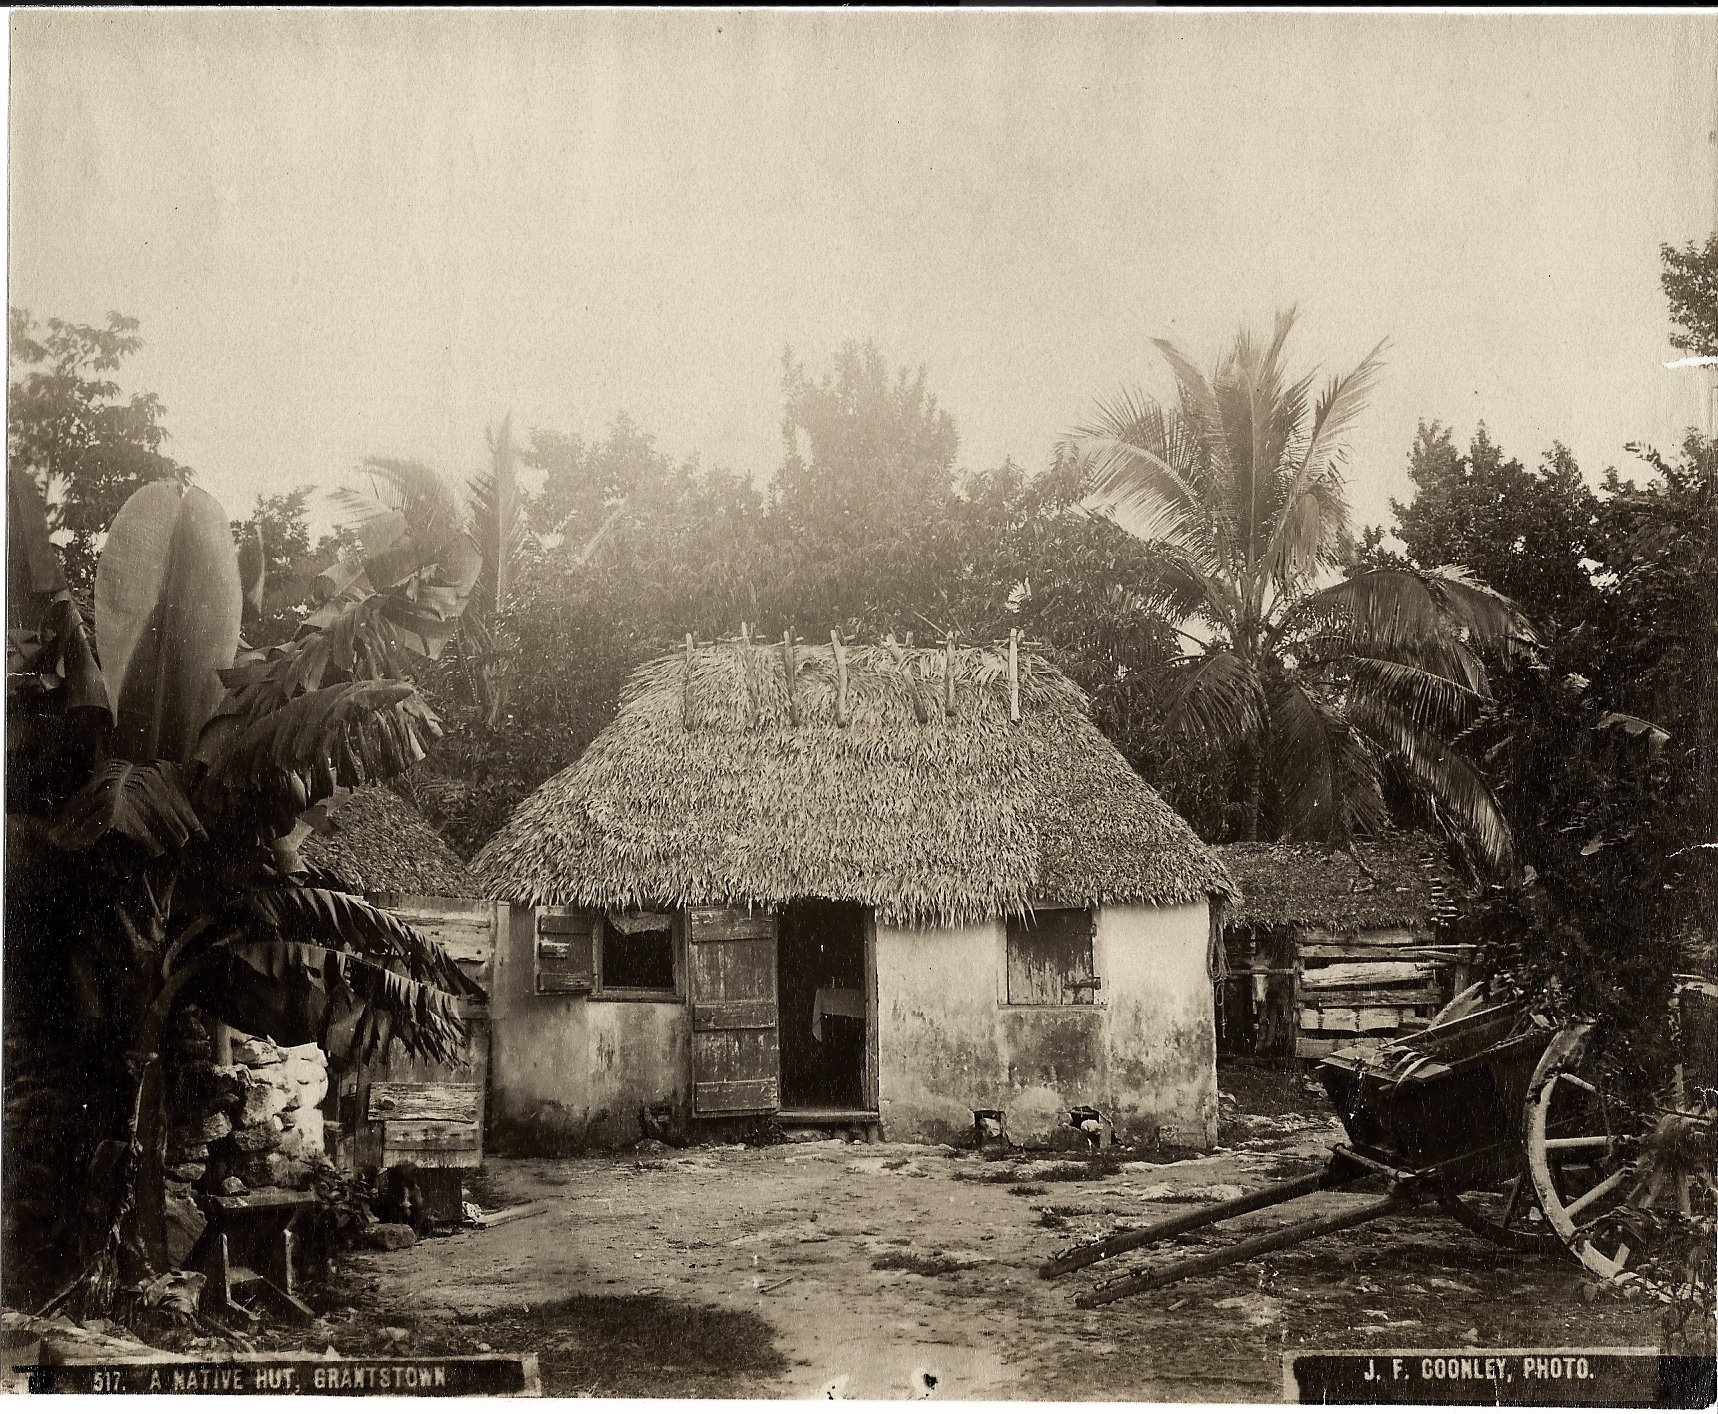 """""""A Native African Hut"""" (ca.1870 - 1900), Jacob Frank Coonley, albumen print, 7 x 8. Part of the National Collection, previously owned by R. Brent Malone. This photograph was originally printed in """"Stark's History and Guide to the Bahama Islands"""" in 1900."""